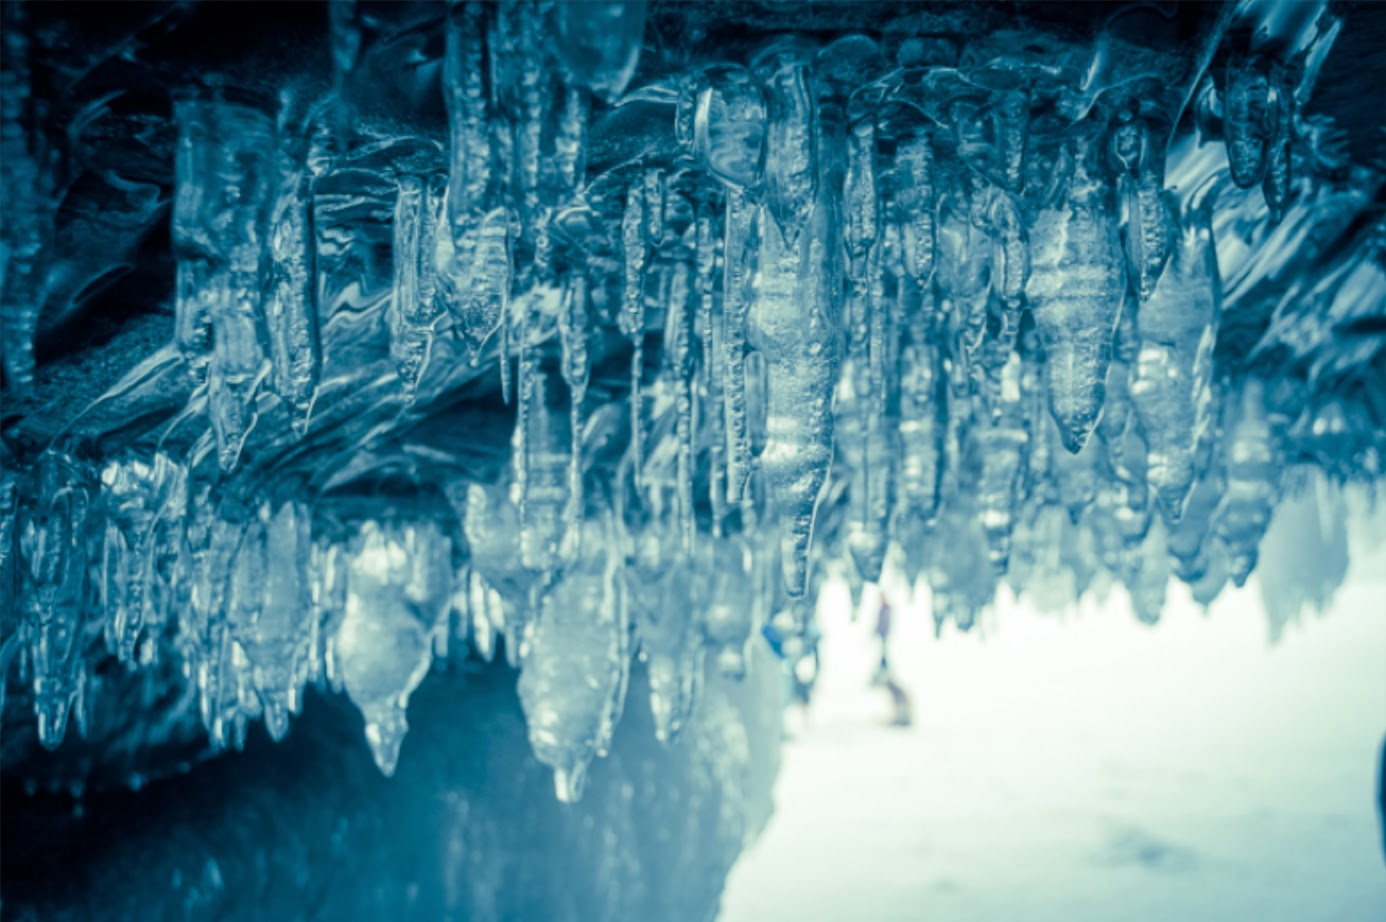 Icicles on ceiling of cave